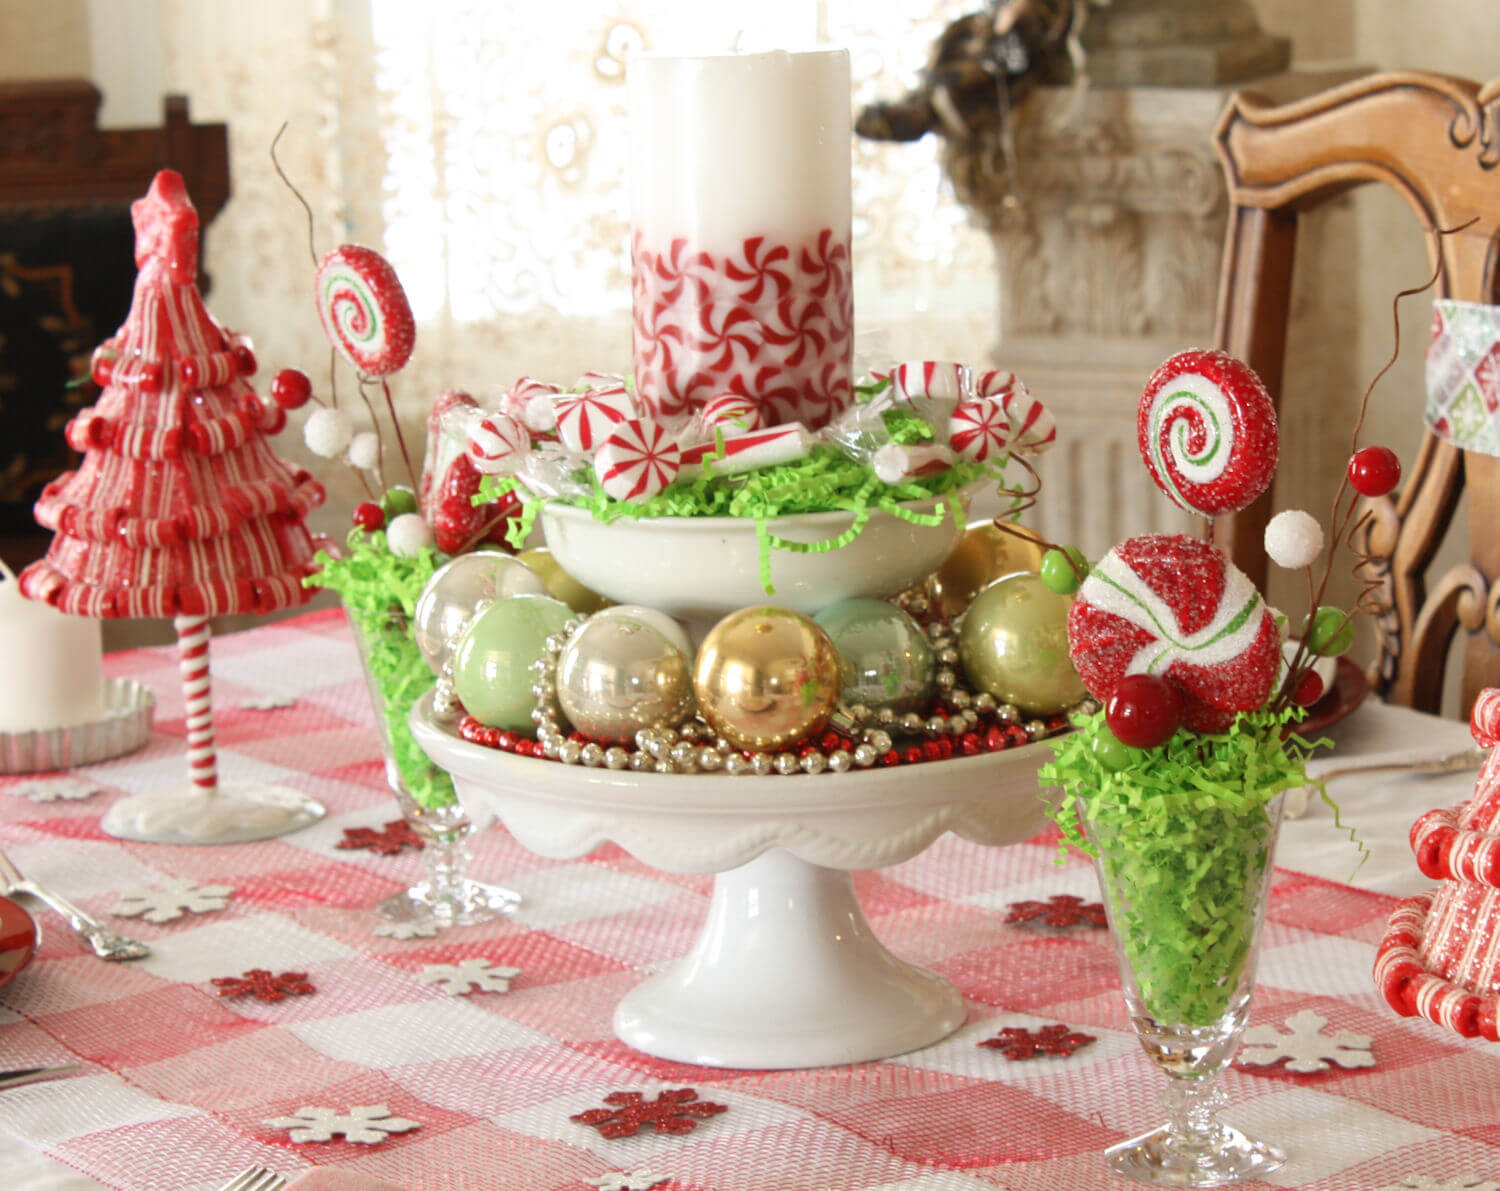 Whimsical Christmas table decor